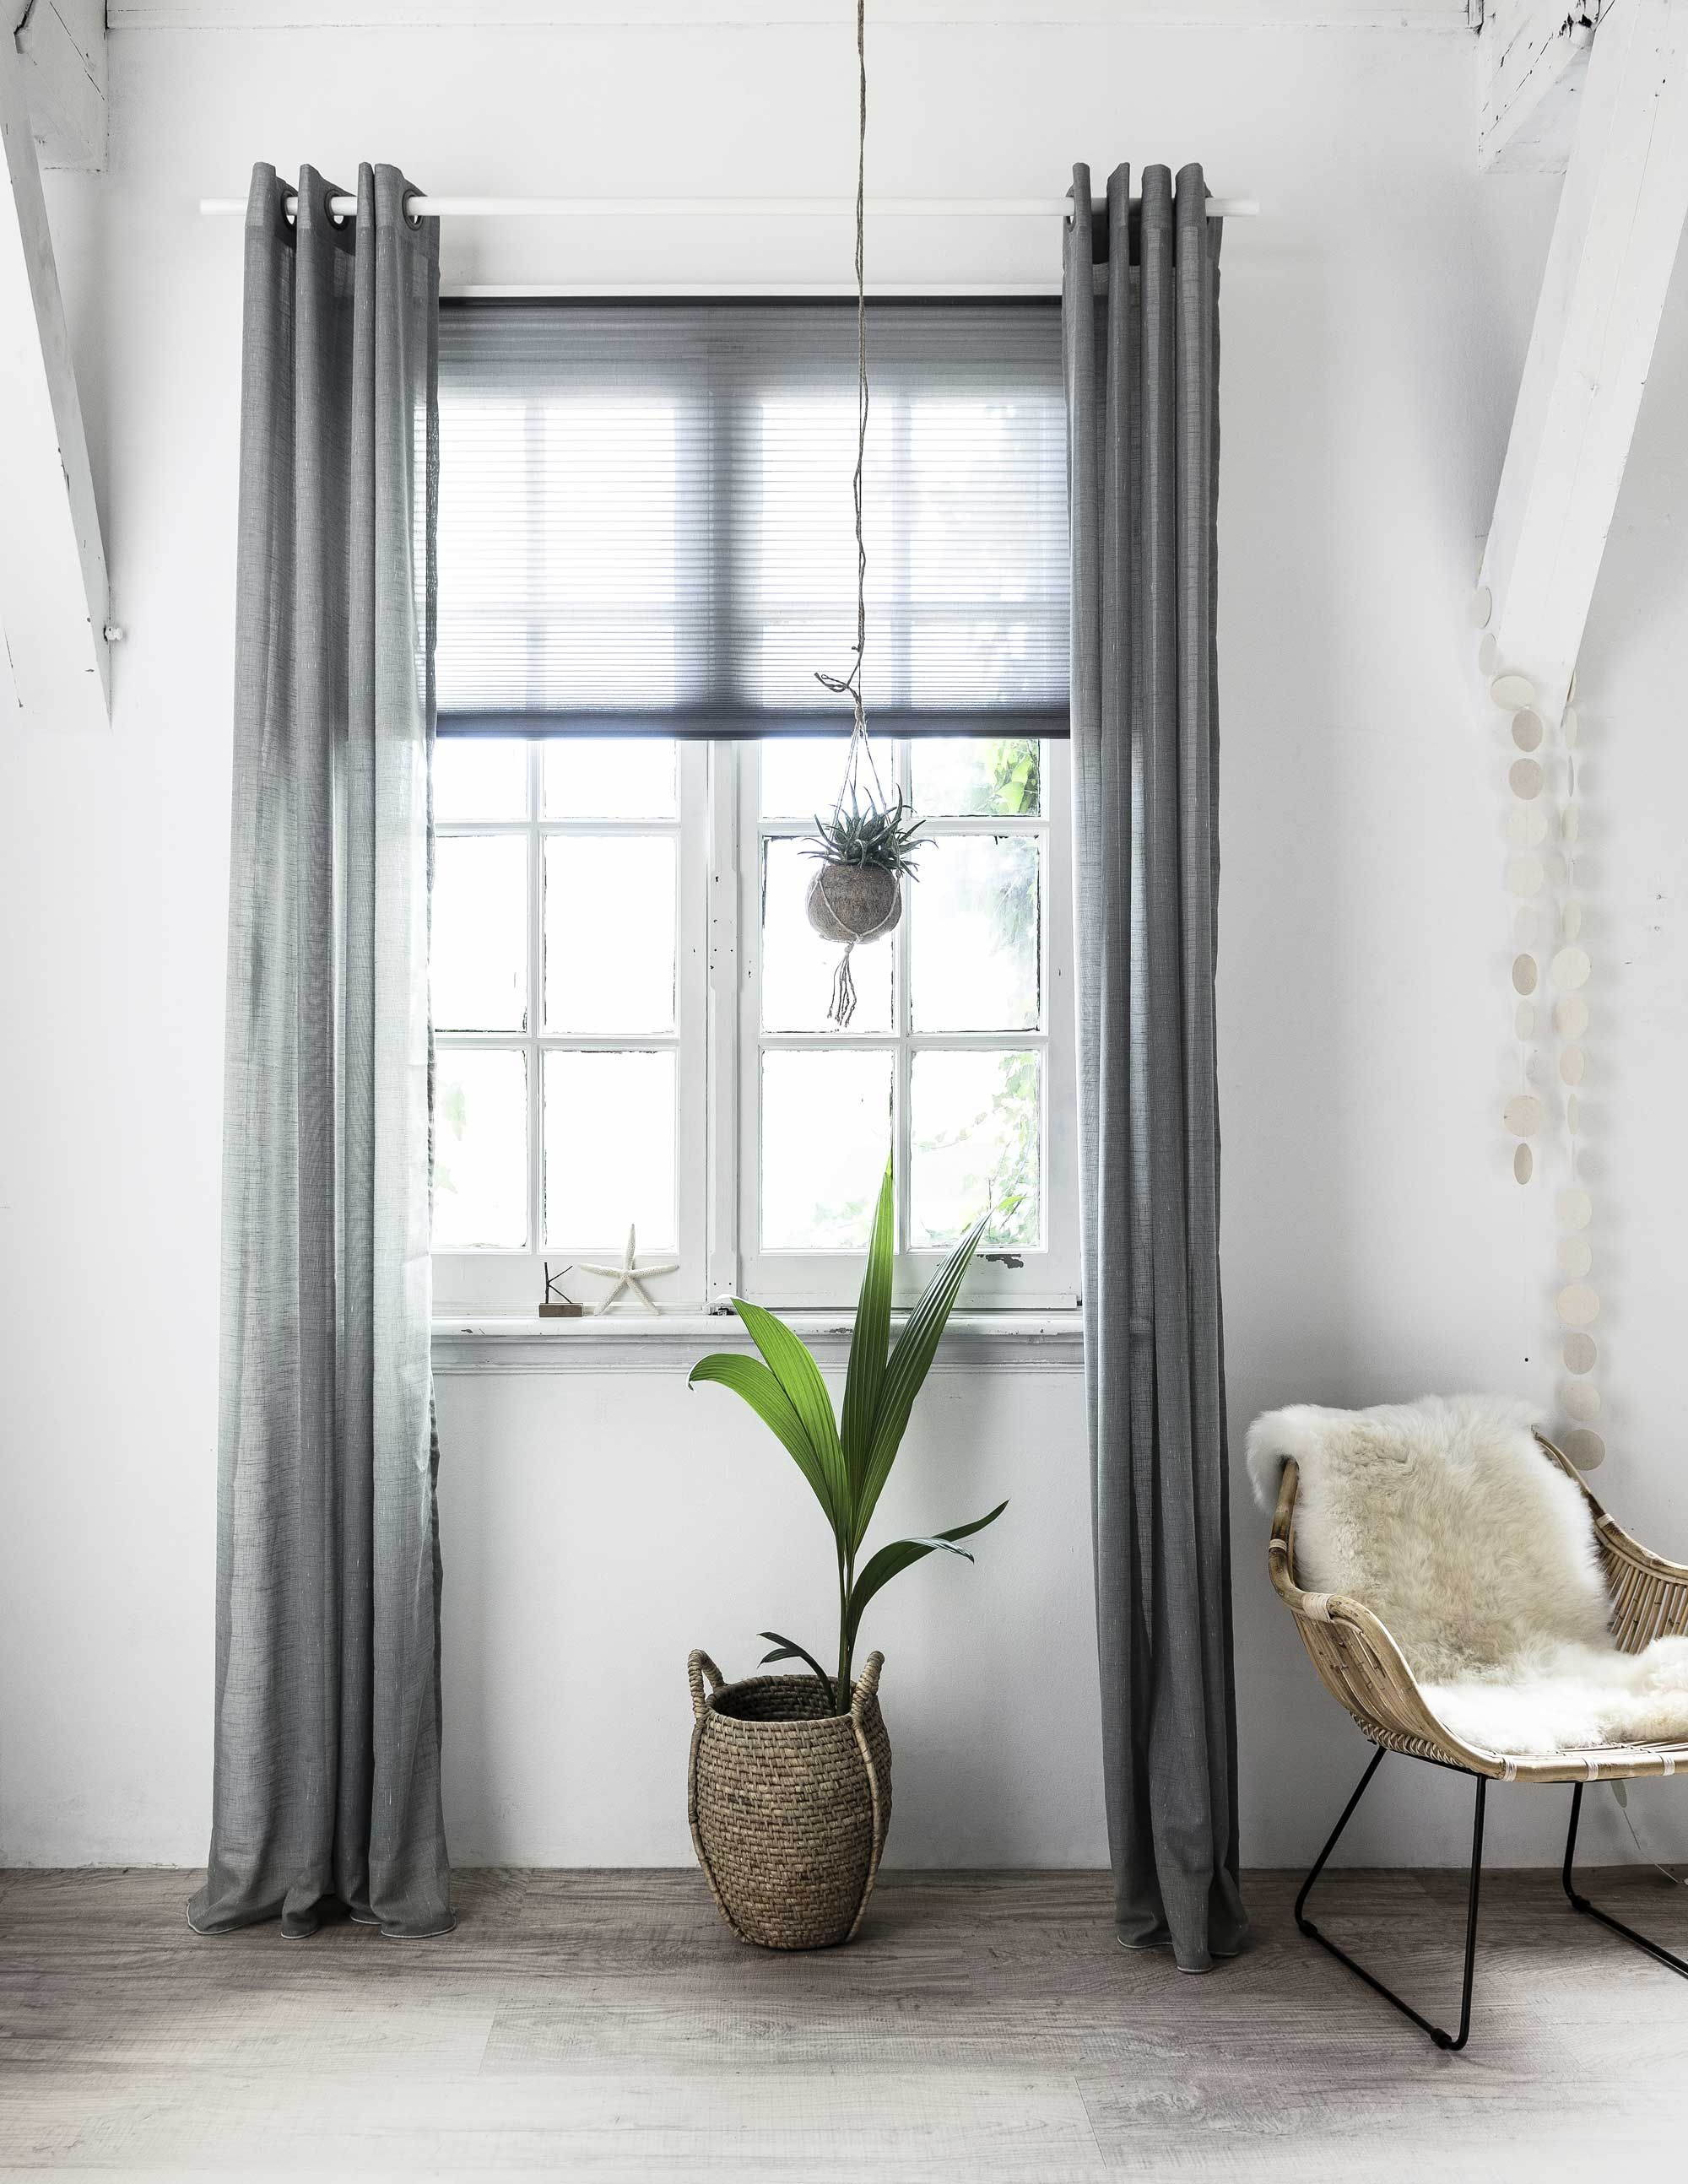 karwei-gordijnen-raamdecoratie | Fabrics | Pinterest | Window ...